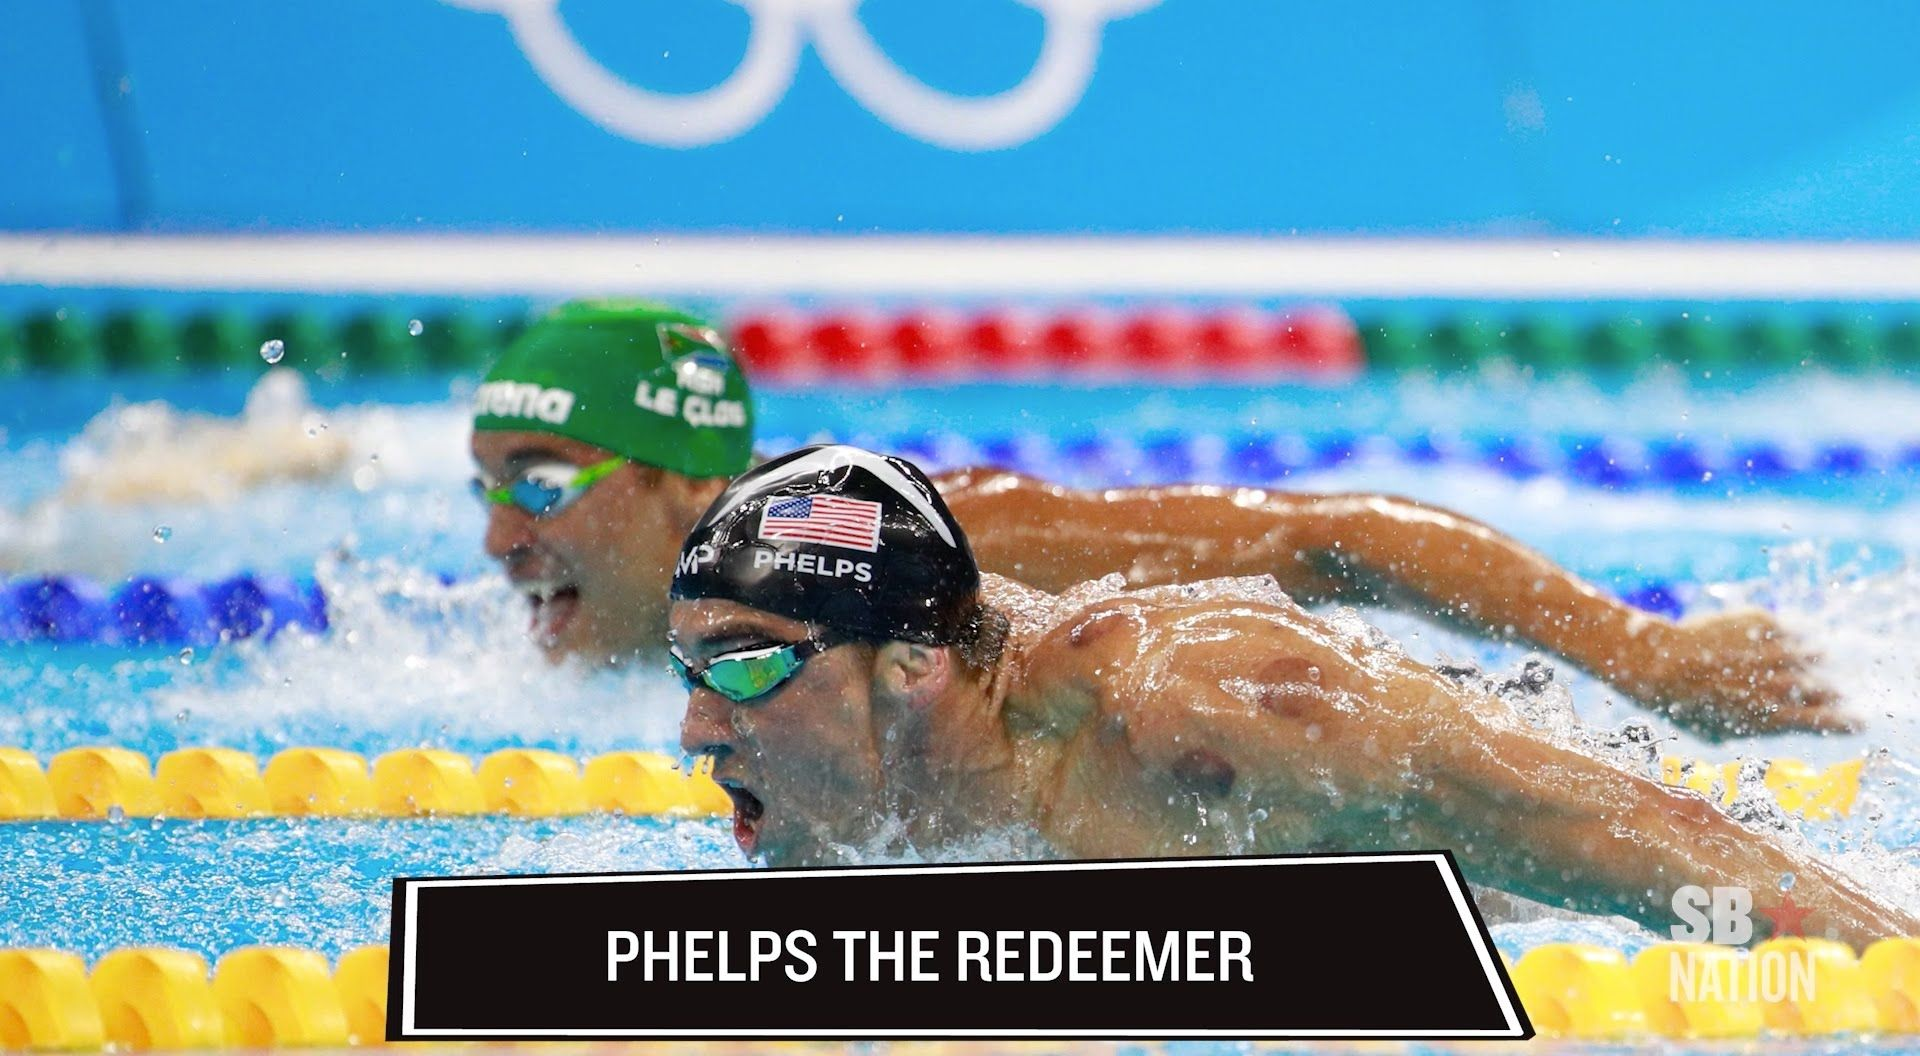 Michael Phelps wins 200M butterfly, captures 25th Olympic medal   Rio Ol...